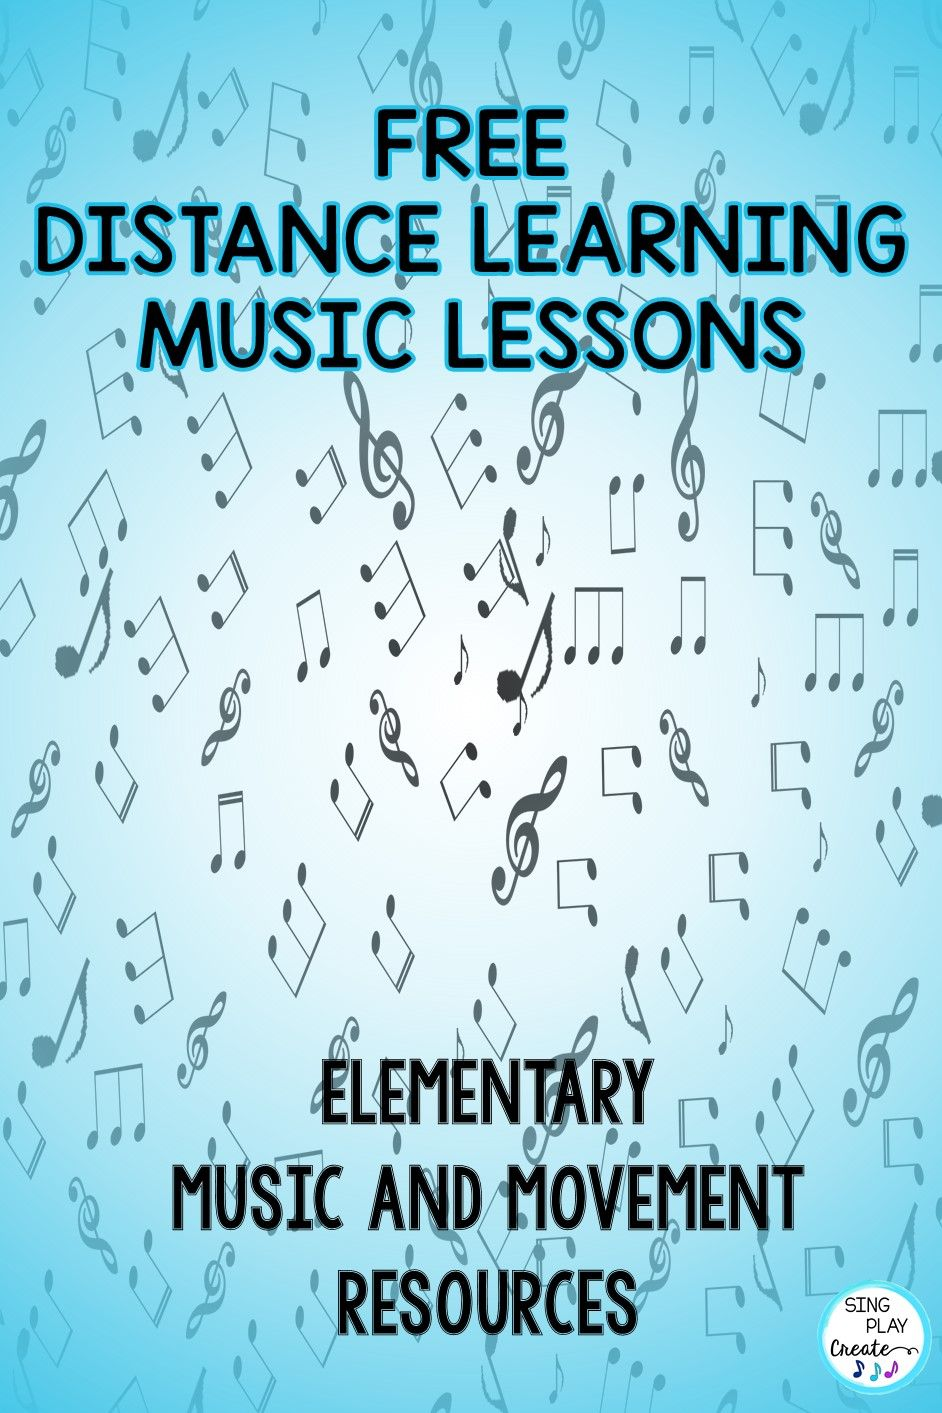 Get the Free resources you need right now for your online and distance learning music lessons. Worksheets, presentations, Videos and audio files will give your students lot's of opportunities to learn while at home. #distancelearning, #distancelearningtpt, #musiceducation, #elementarymusiced